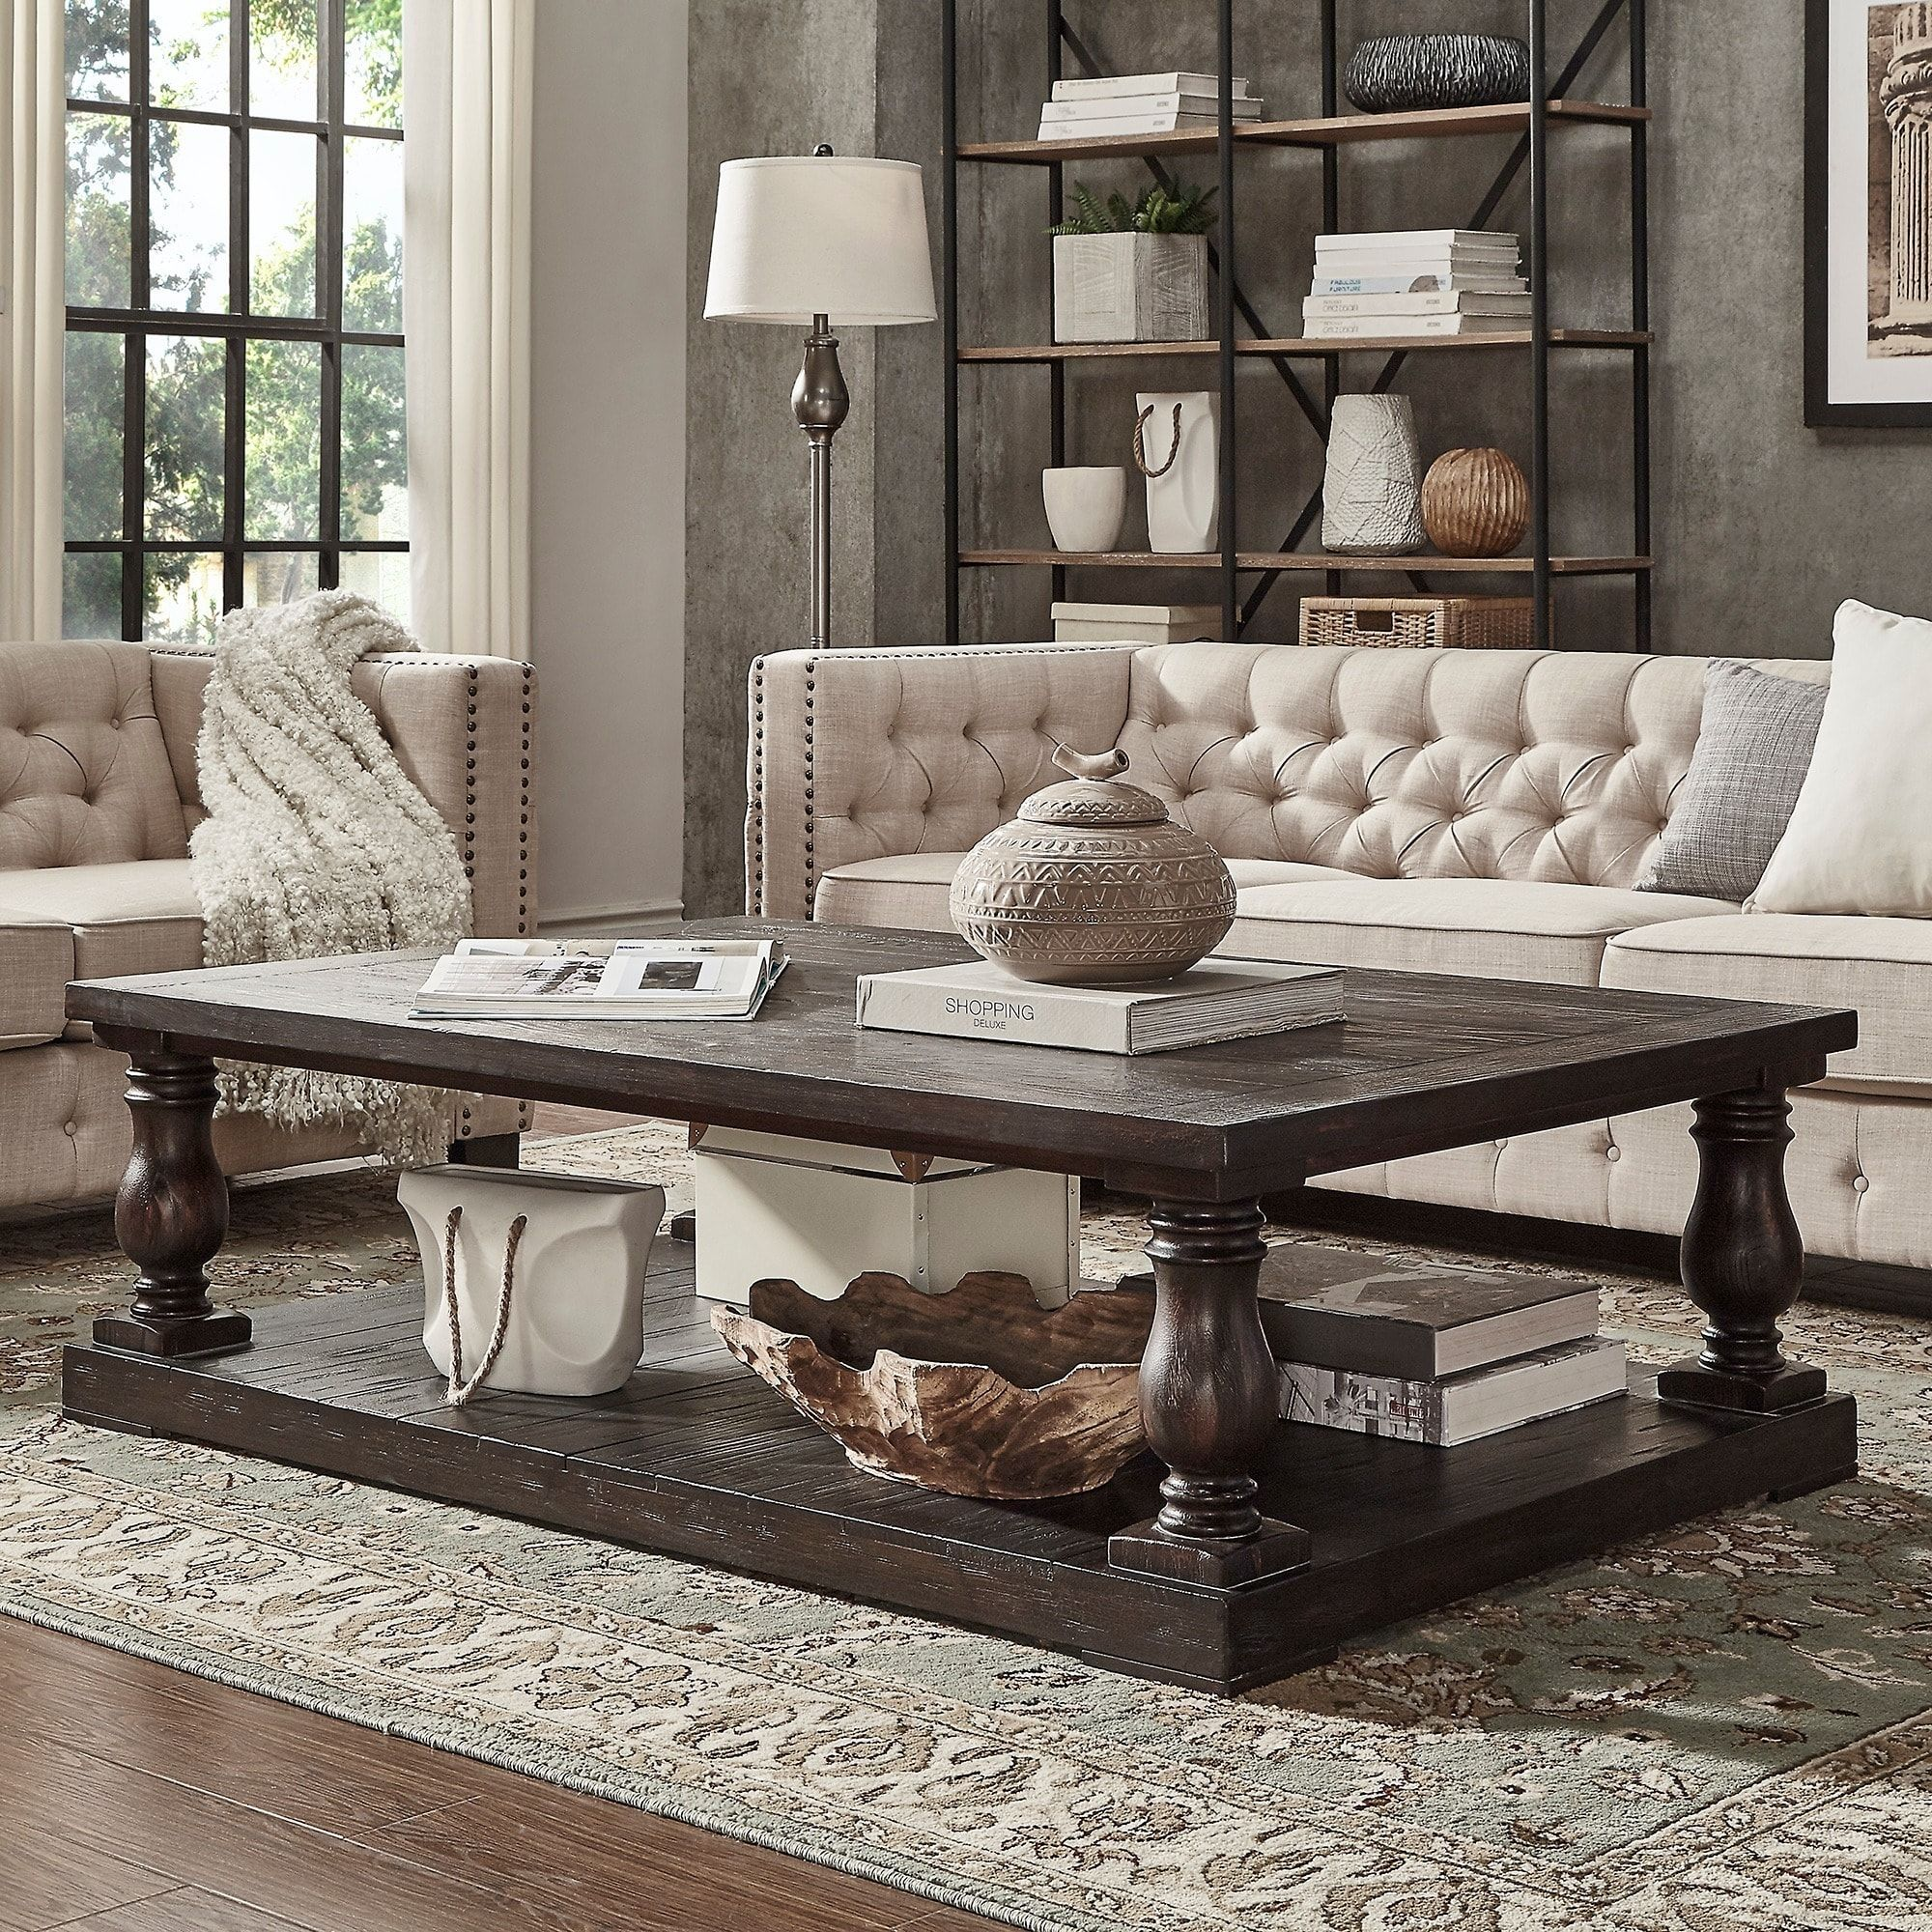 Edmaire Rustic Baluster 60 Inch Coffee Table By Inspire Q Artisan Furniture Room Decor Home Decor